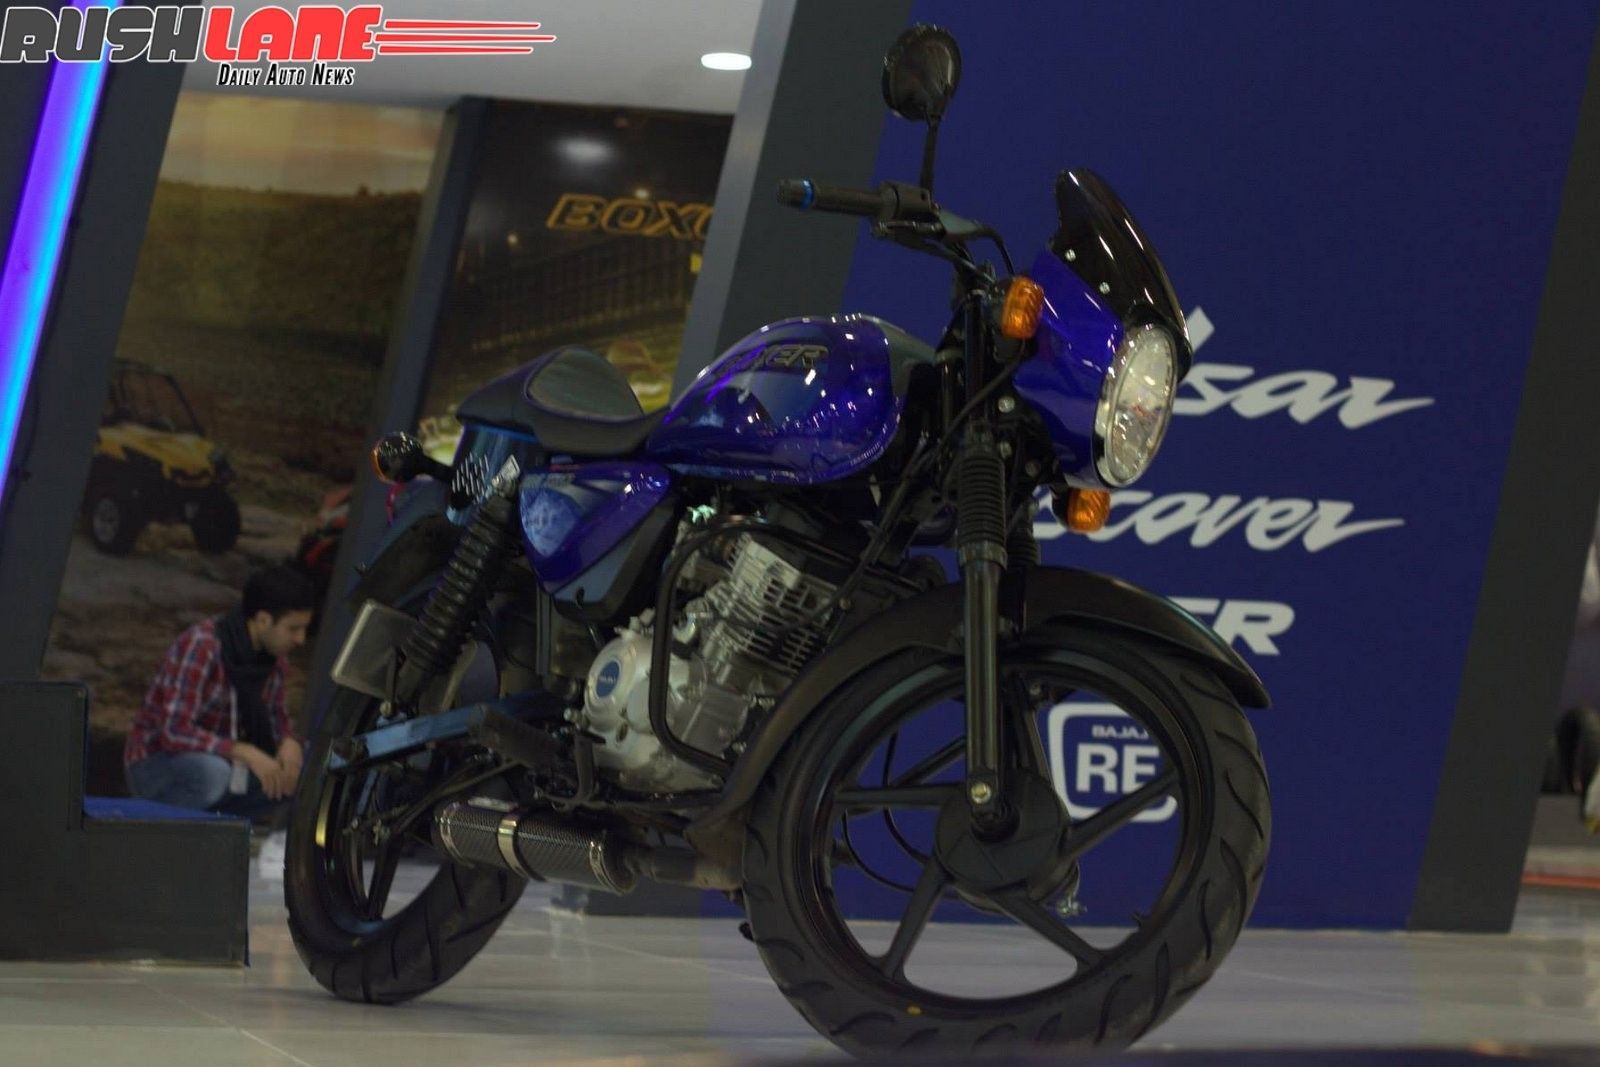 Clear Pics Of Bajaj Cafe Racer Boxer 150 Motorcycle Unveiled